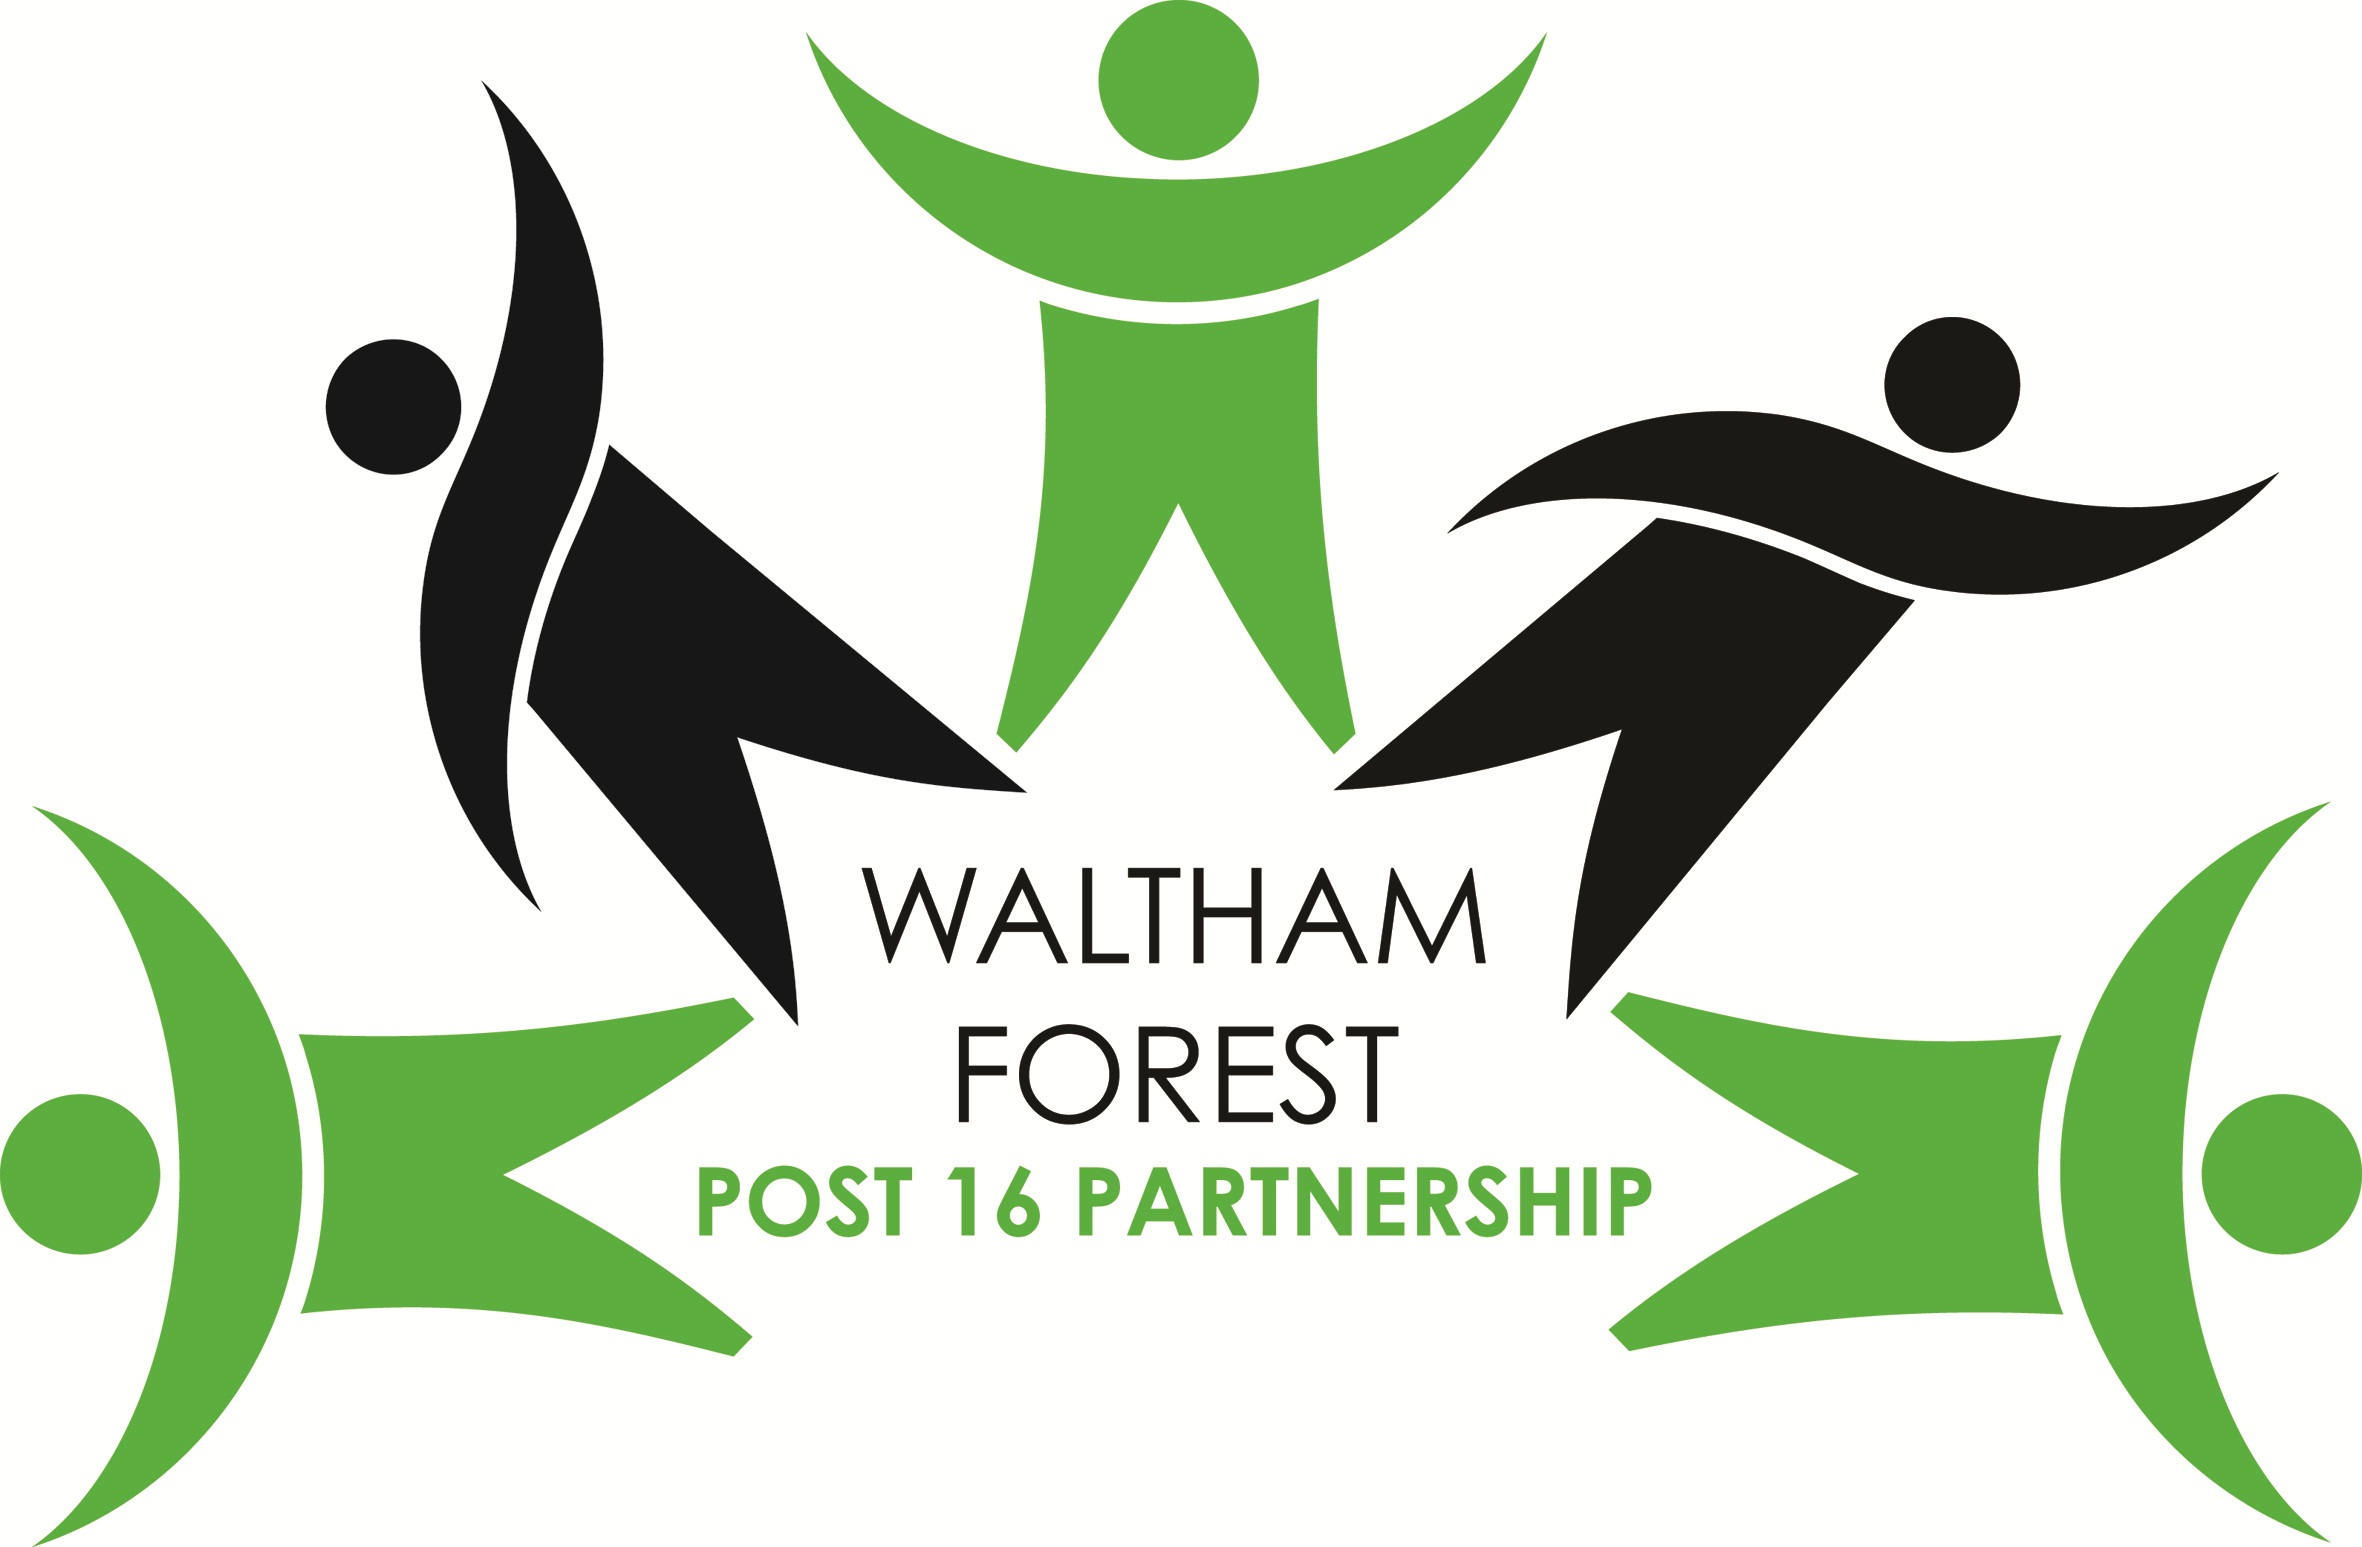 Waltham Forest Post 16 Partnership logo